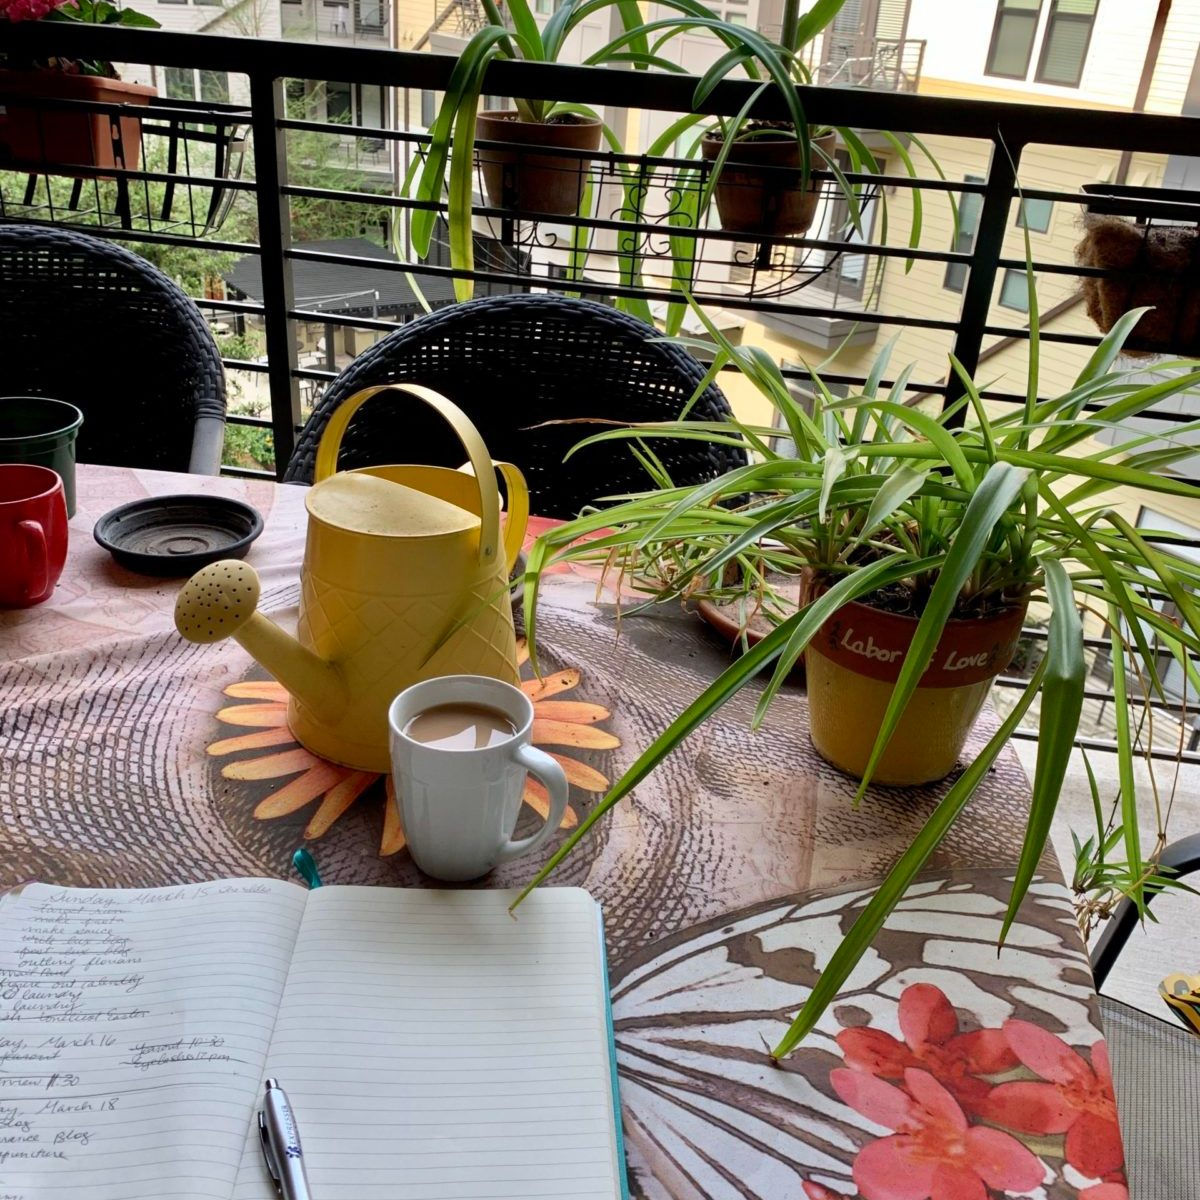 A picture of my patio on a sunny day with plants, my notebook, a cup of tea, and a yellow watering can